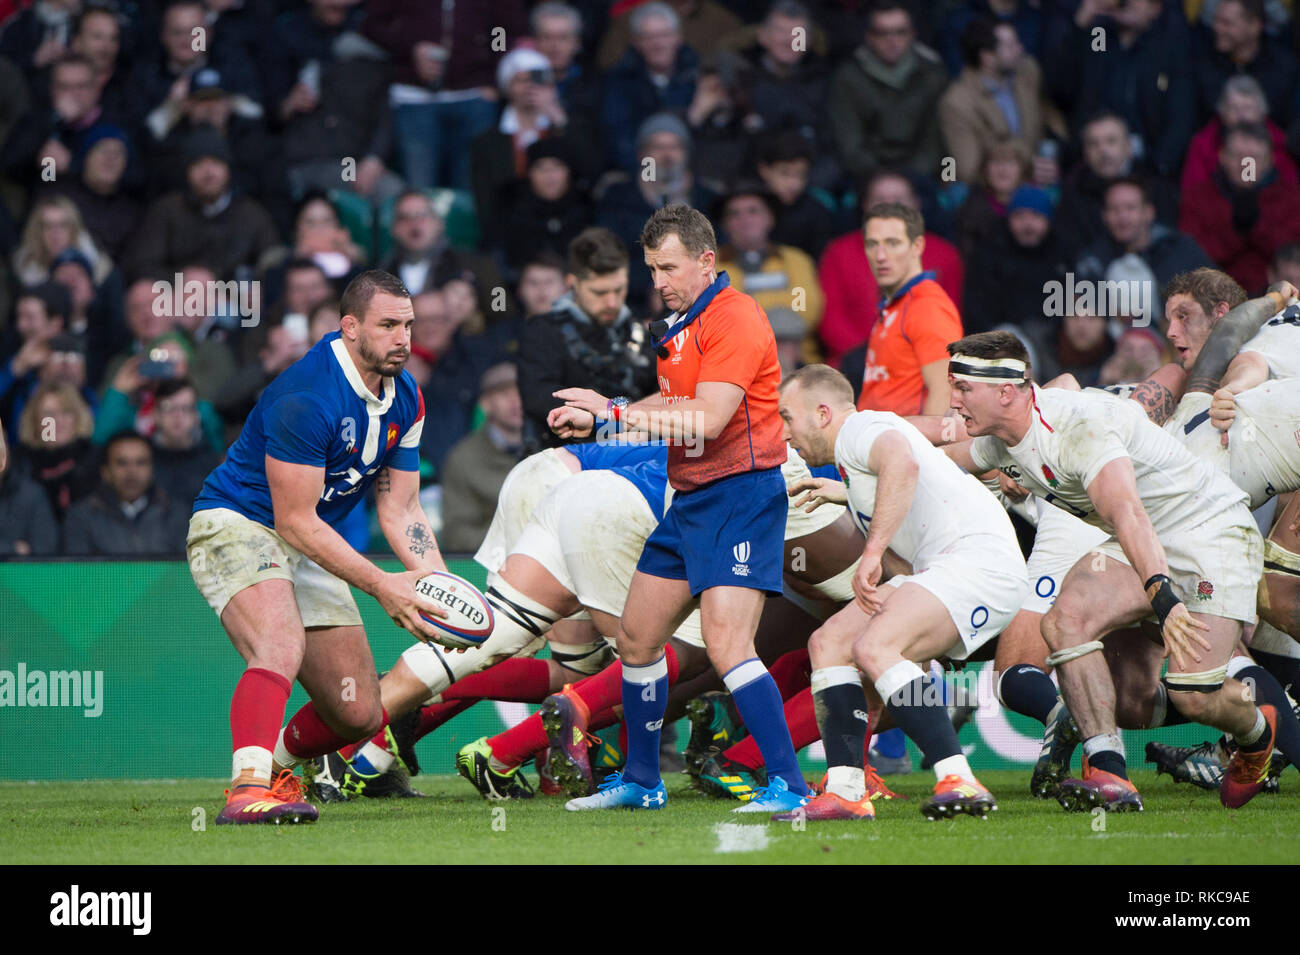 Twickenham, United Kingdom. 7th February, Louis PICAMOLE, looking for support, England vs France, 2019 Guinness Six Nations Rugby Match   played at  the  RFU Stadium, Twickenham, England,  © PeterSPURRIER: Intersport Images Credit: Peter SPURRIER/Alamy Live News Stock Photo